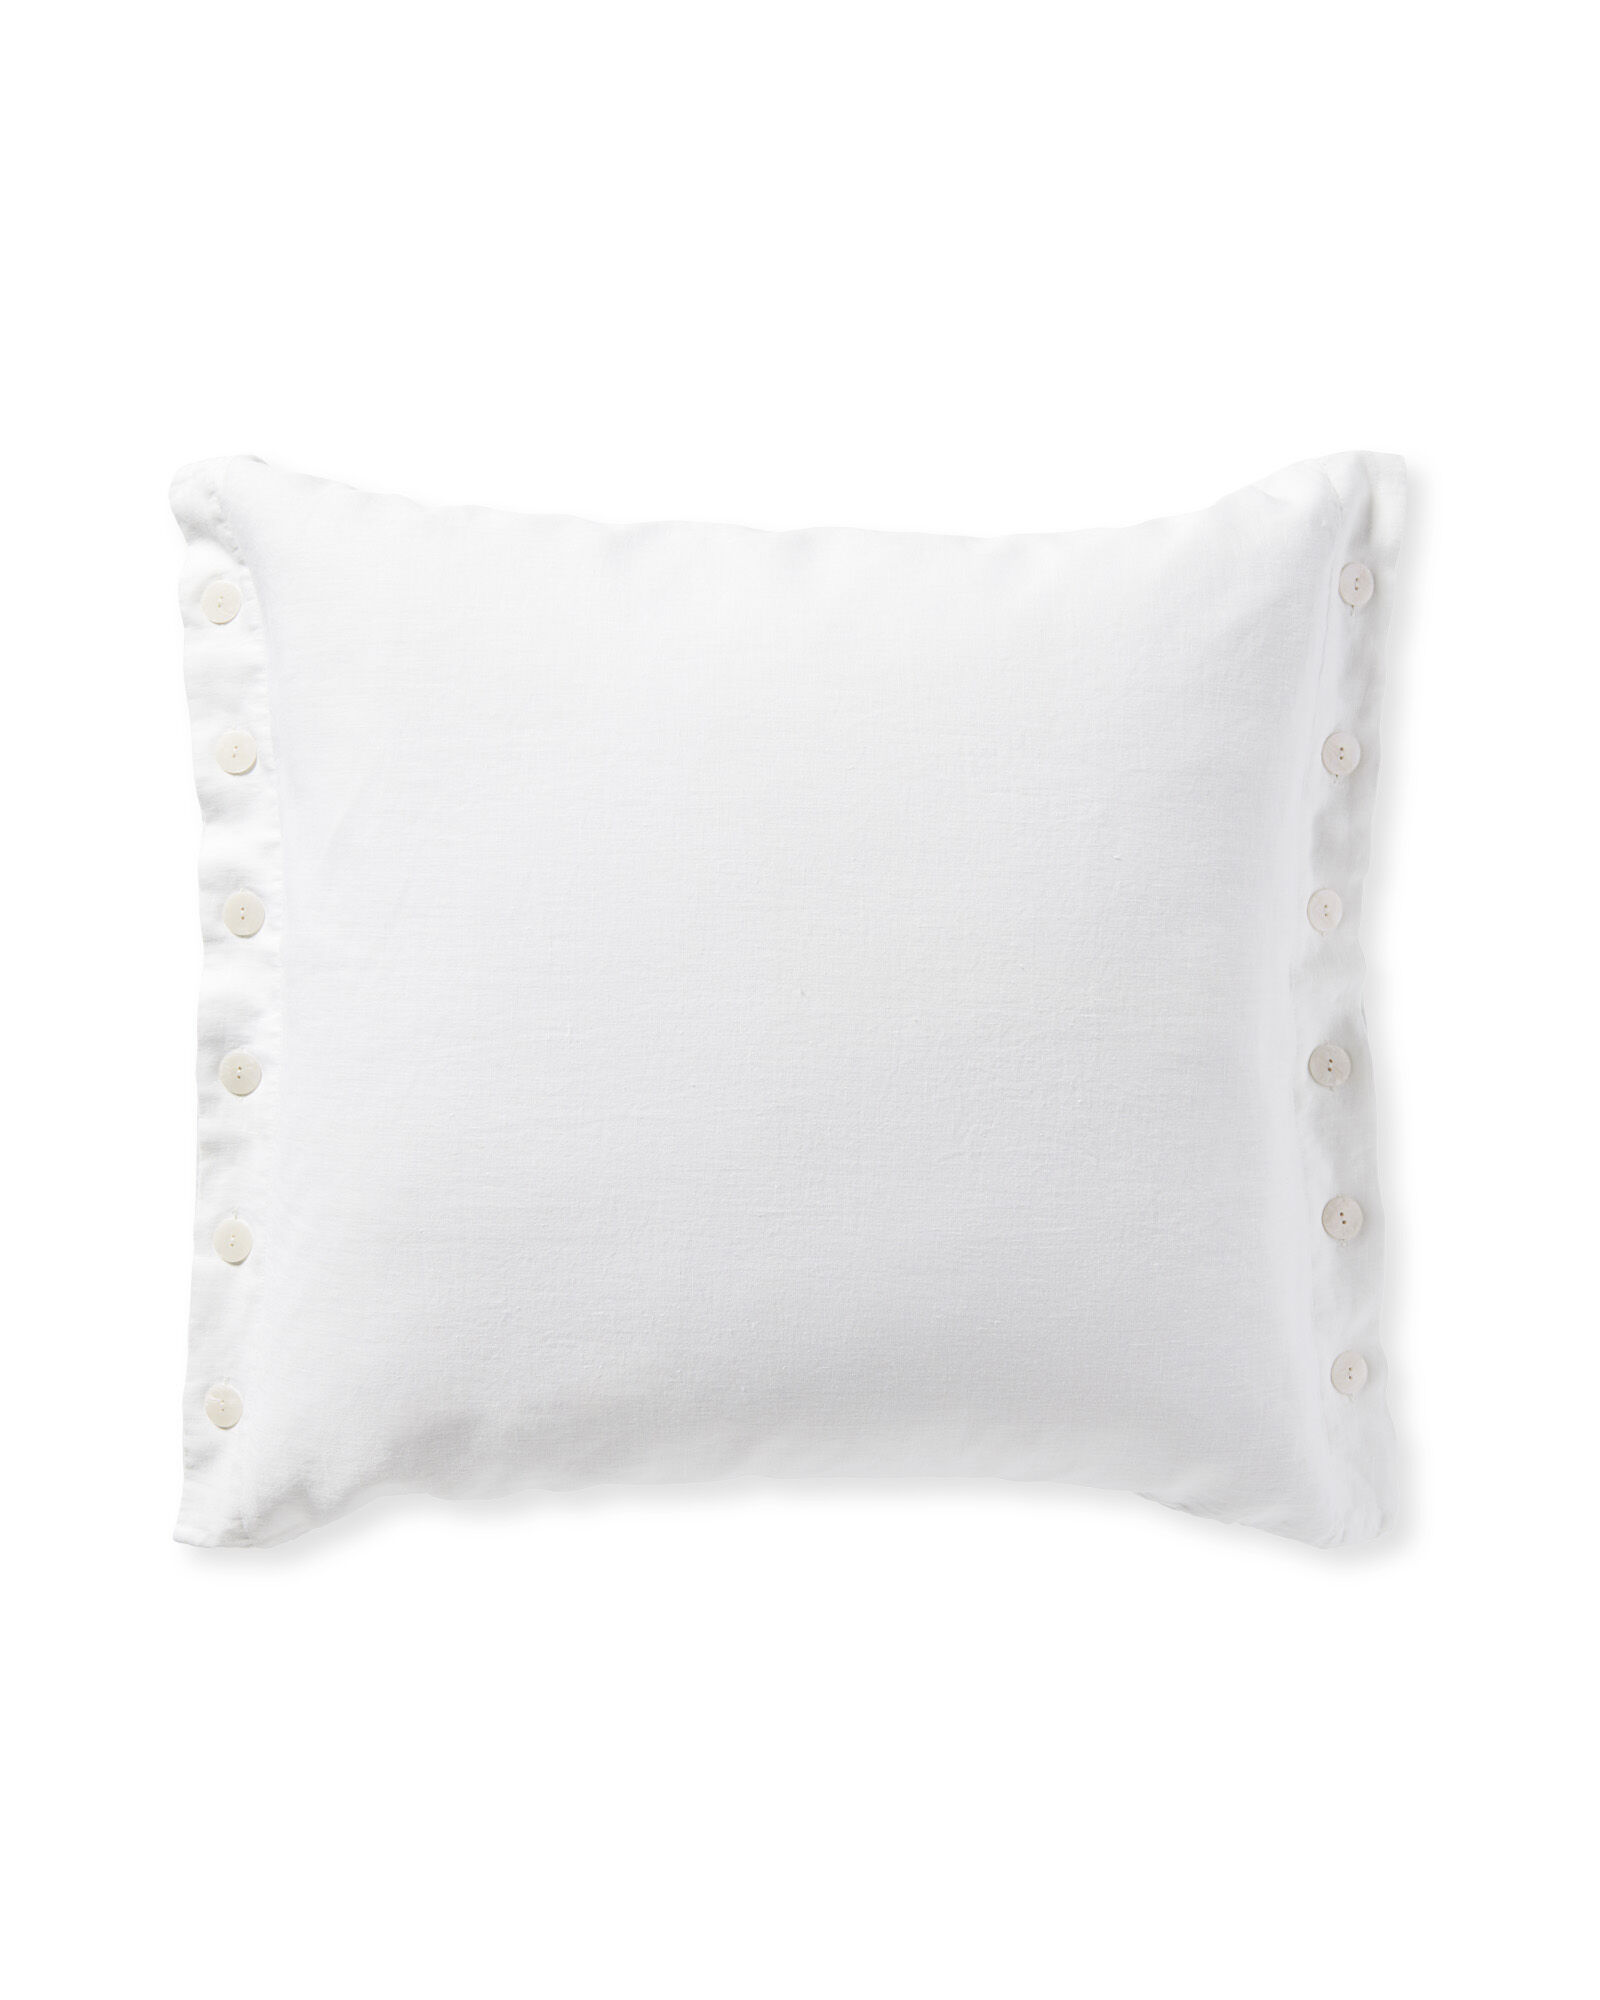 Boothbay Pillow Cover, White